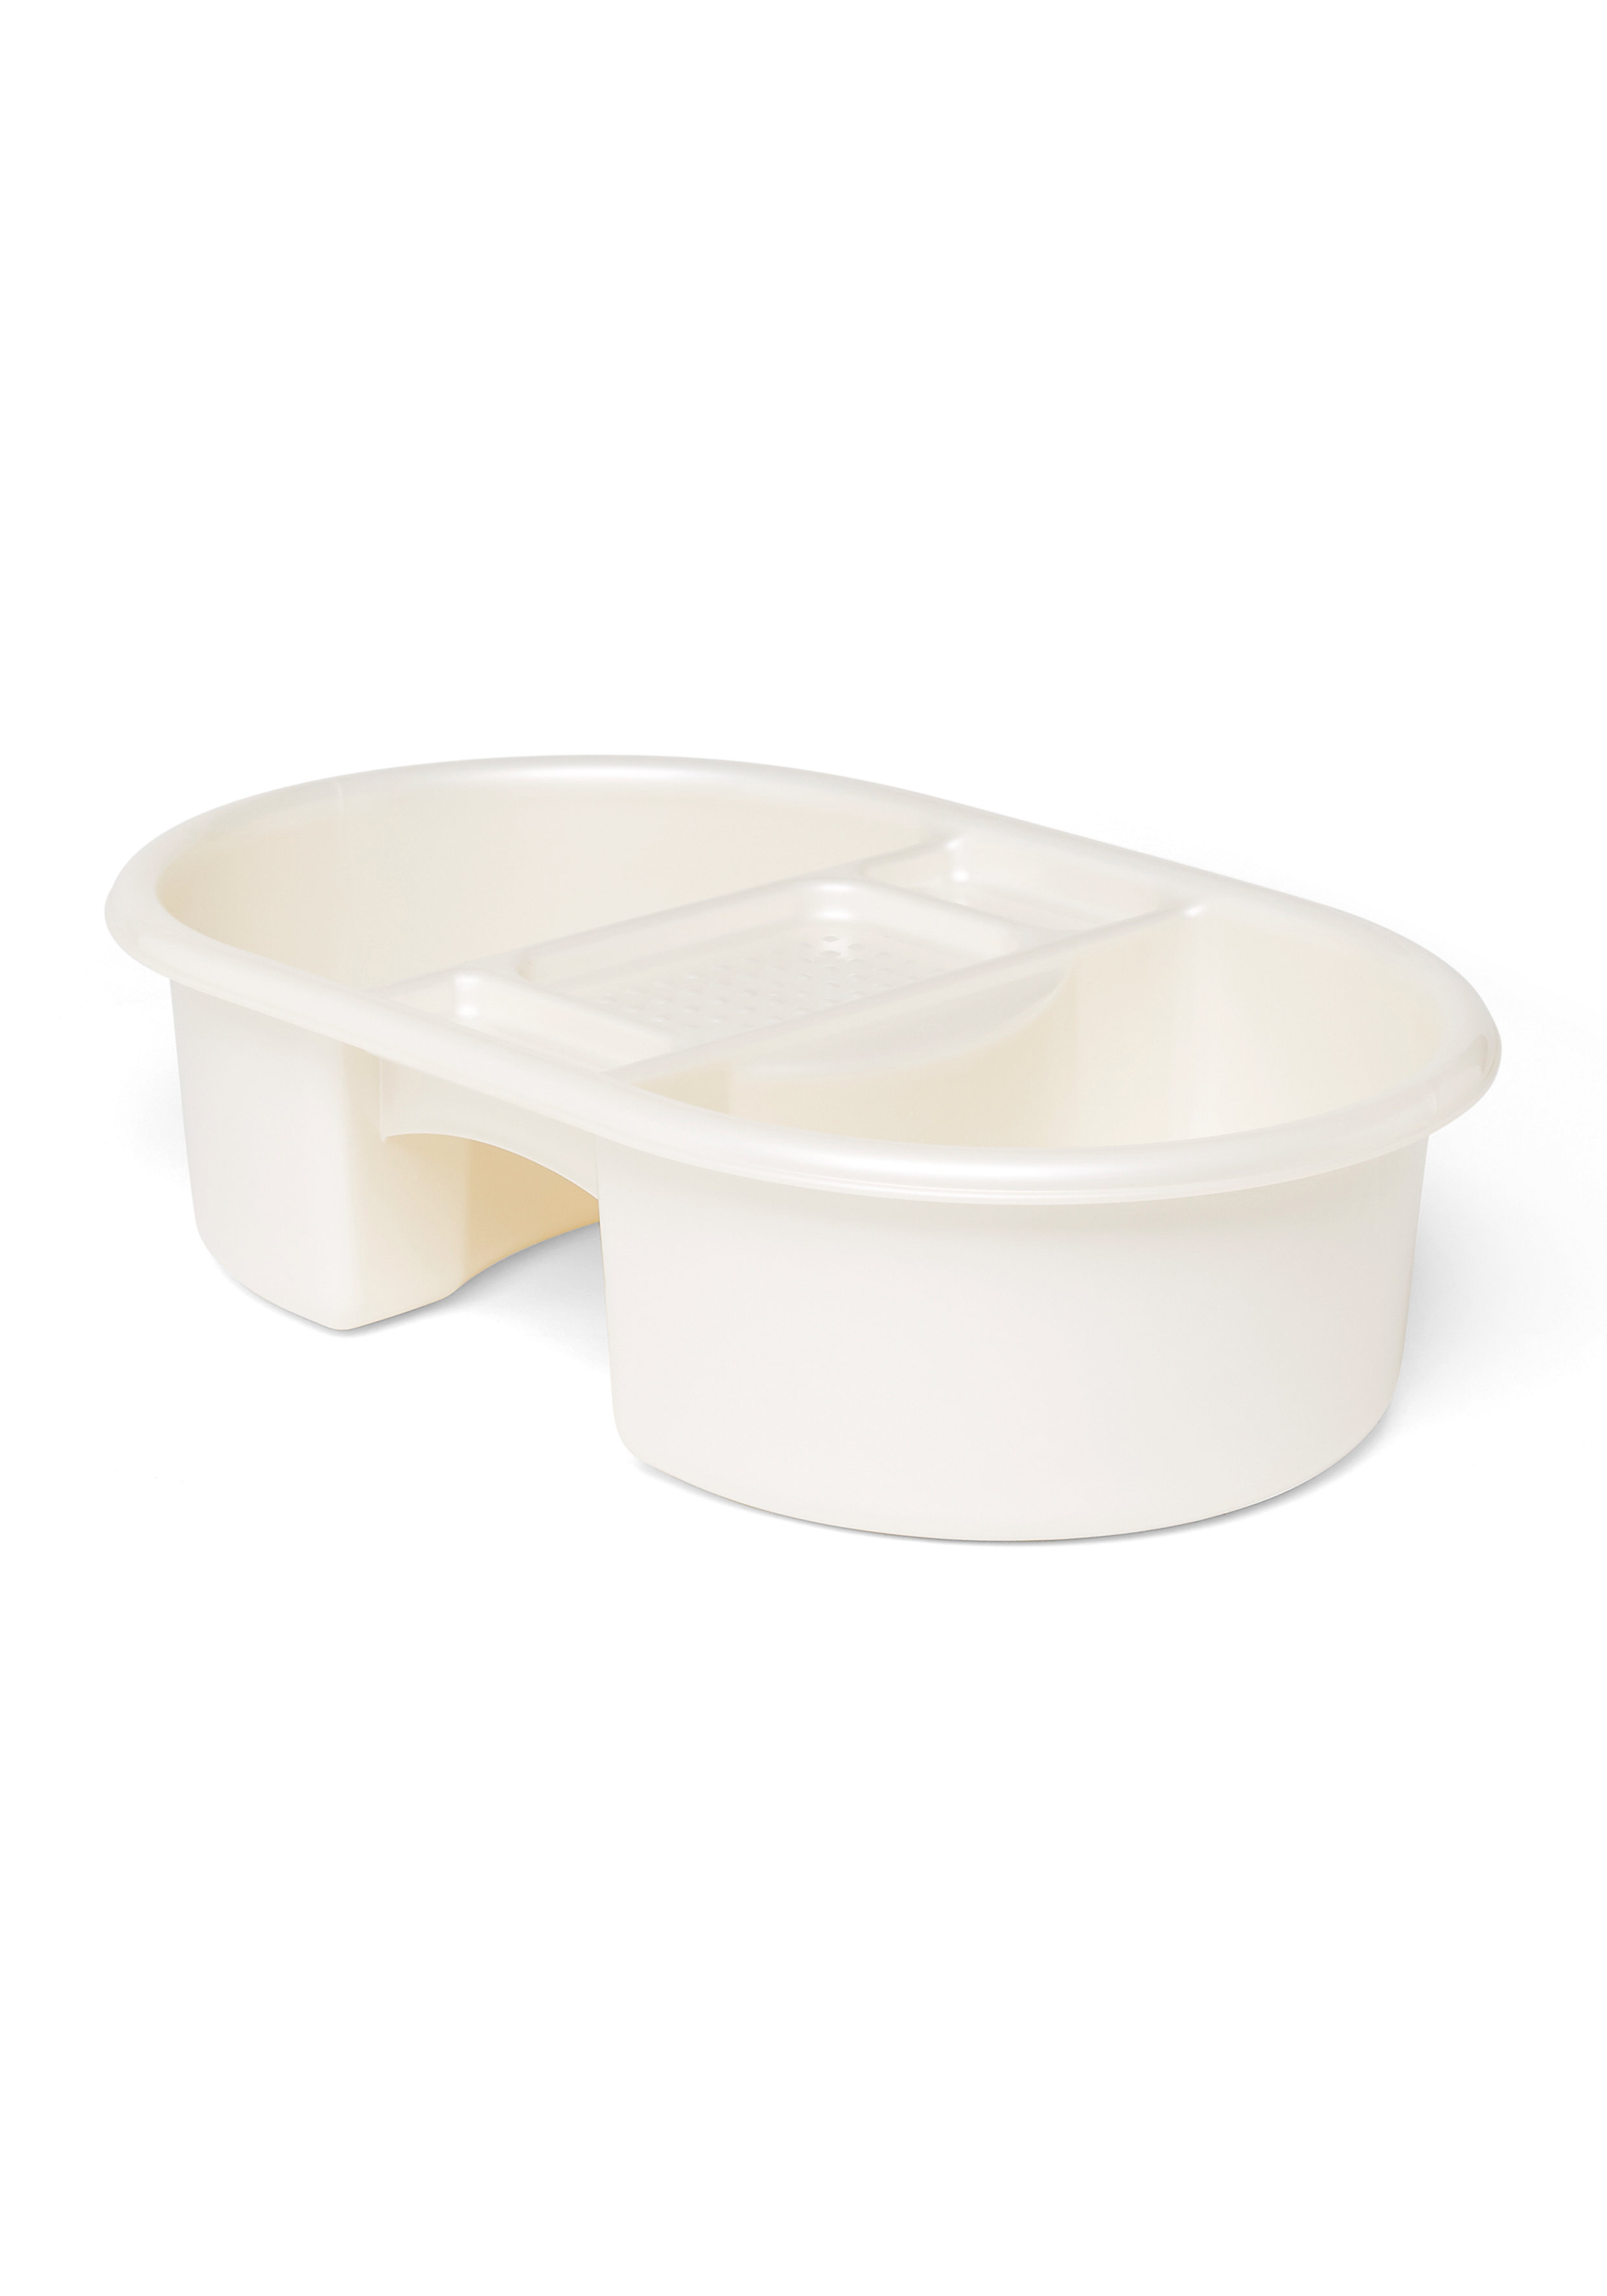 Mothercare | Mothercare Teddy'S Toy Box Top 'N Tail Bowl White